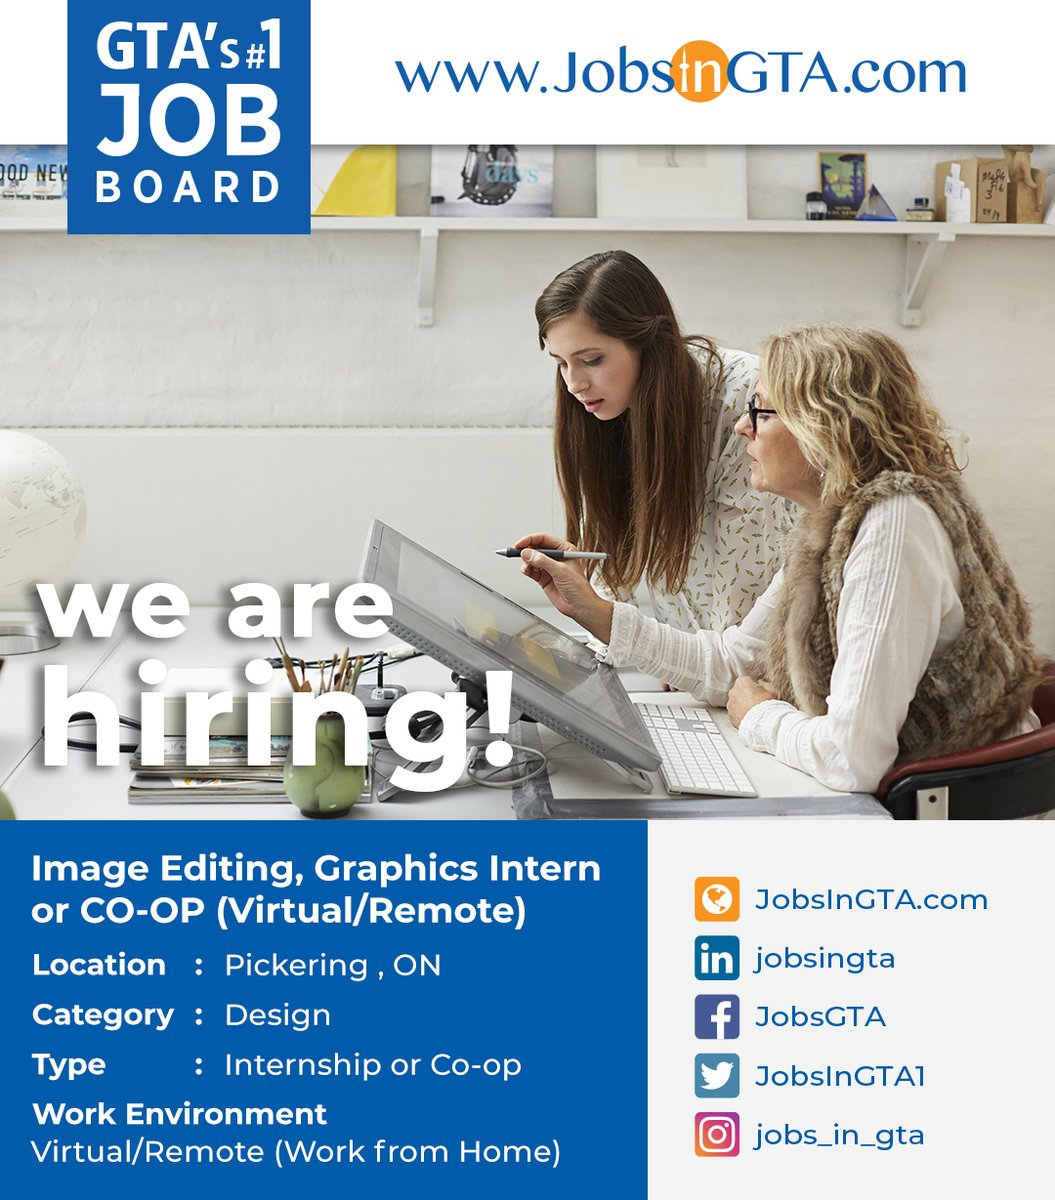 We're hiring ! We're looking for Image Editing, Graphics Intern or CO-OP (Virtual/Remote) Apply: https://t.co/xUt98lbNQW #JobsInGTA #WorkFromHome #RemoteJobs #VirtualWork #Internship  #editing  #GraphicsJobs #Hiring  #TorontoJobs #StayHome #StaySafe #MondayMotivation  #Pickering https://t.co/mGf4oZpFgq